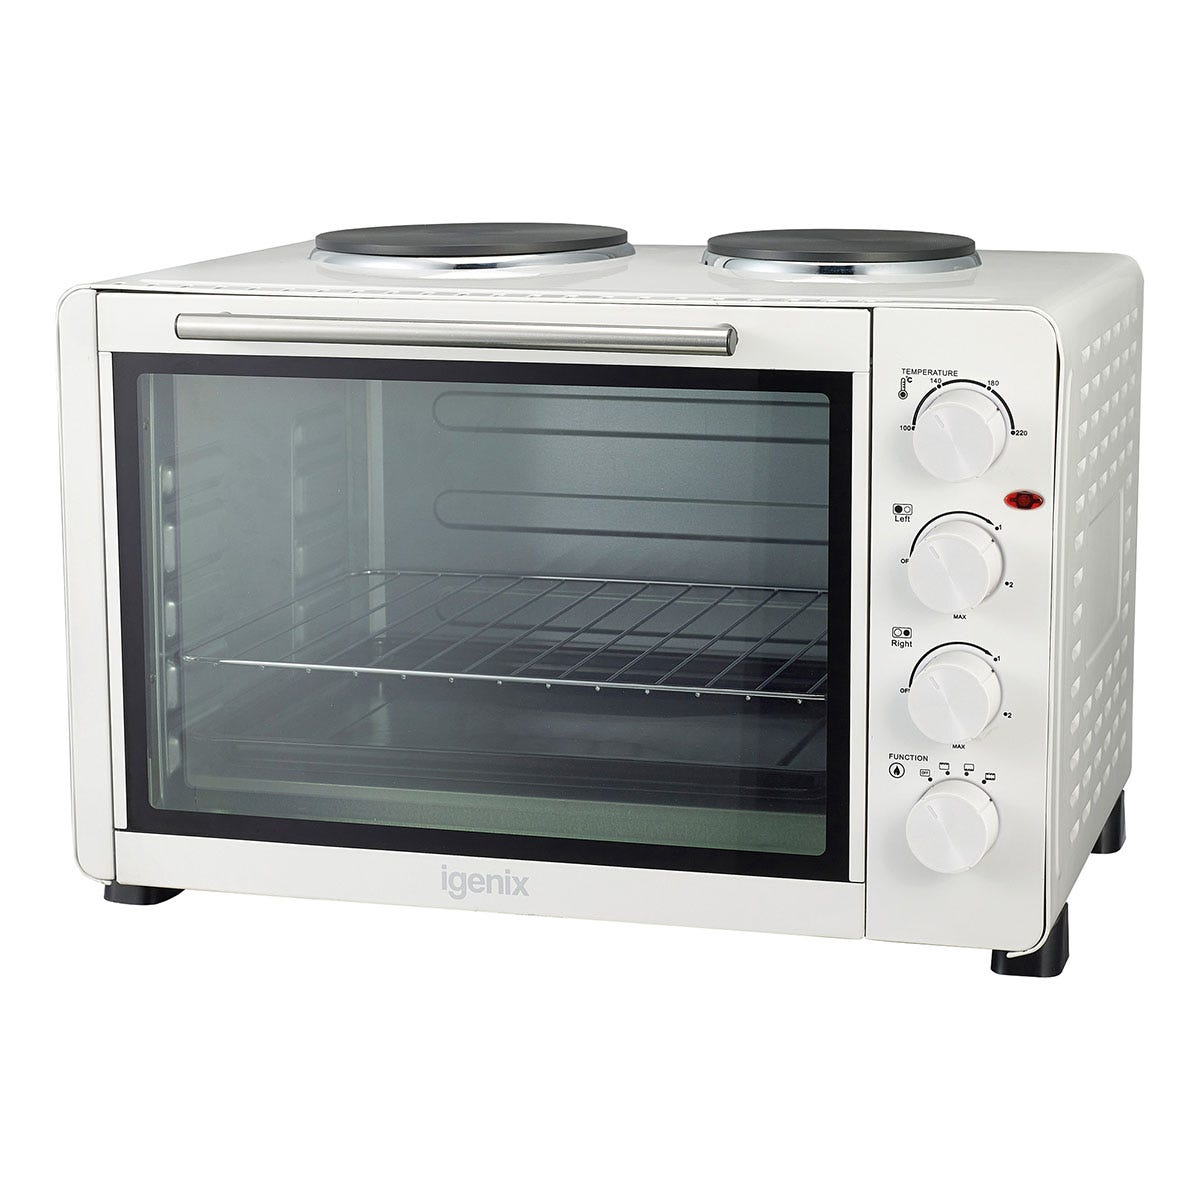 Igenix IG7145 45L Electric Mini Oven and Grill with Double Hot Plates - White